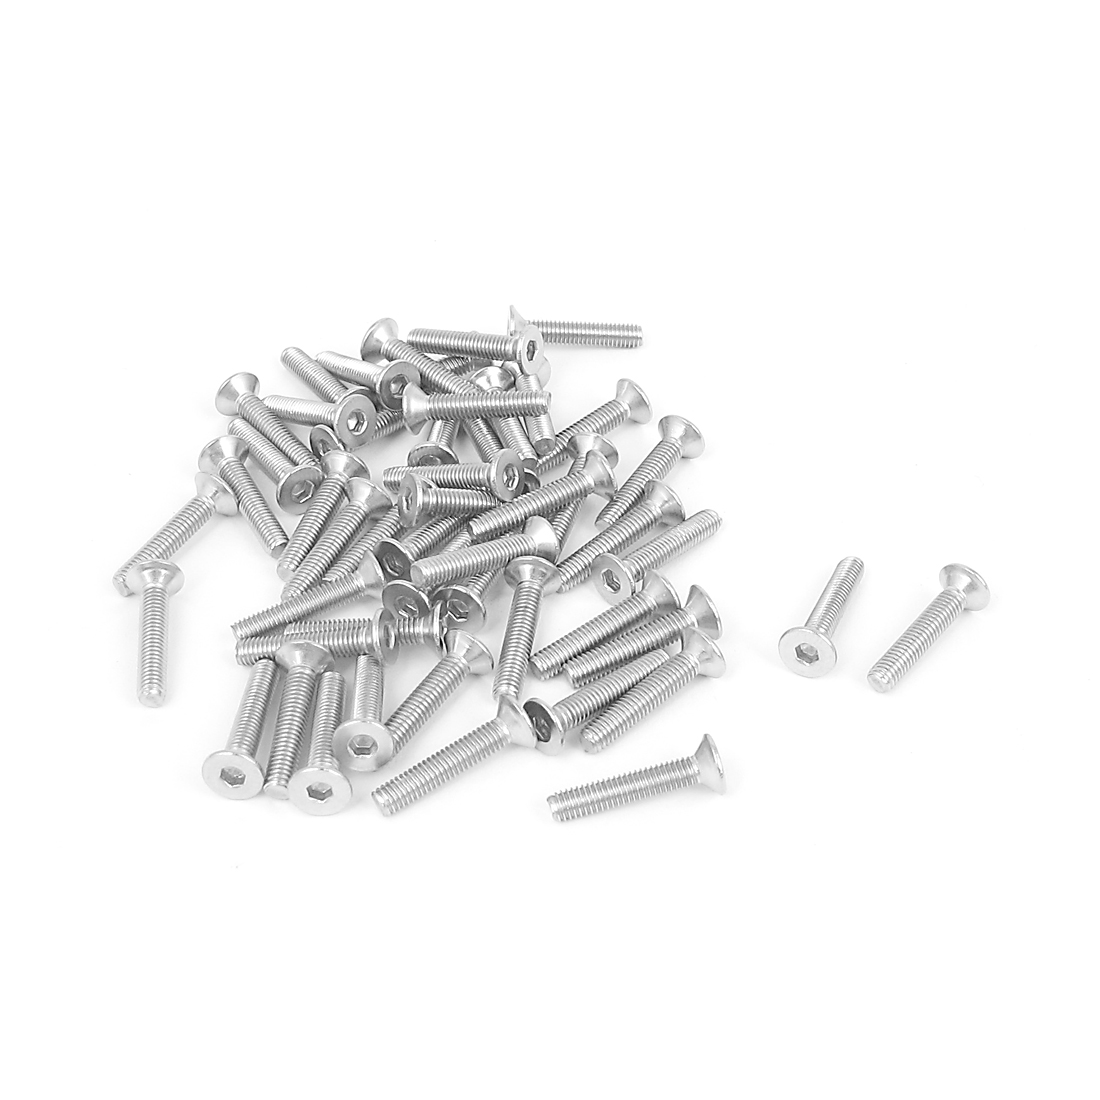 M3 x 16mm Metric 304 Stainless Steel Hex Socket Countersunk Flat Head Screw Bolts 50PCS